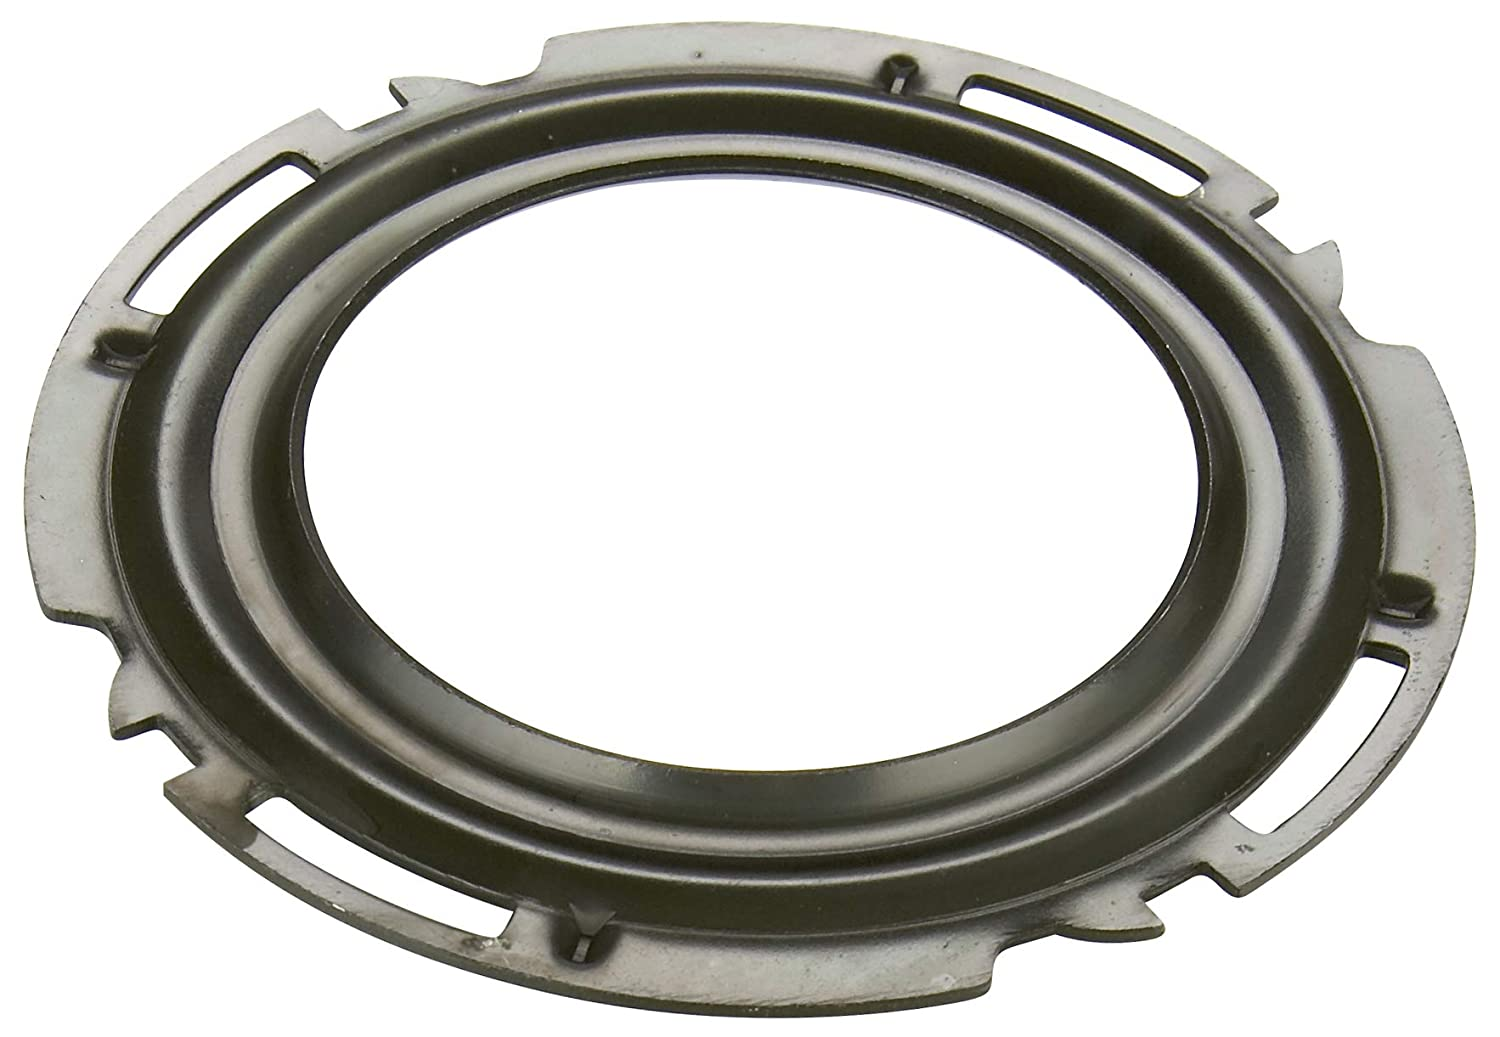 Spectra Premium Tr19 Fuel Tank Lock Ring Automotive 2001 Blazer Filter Location